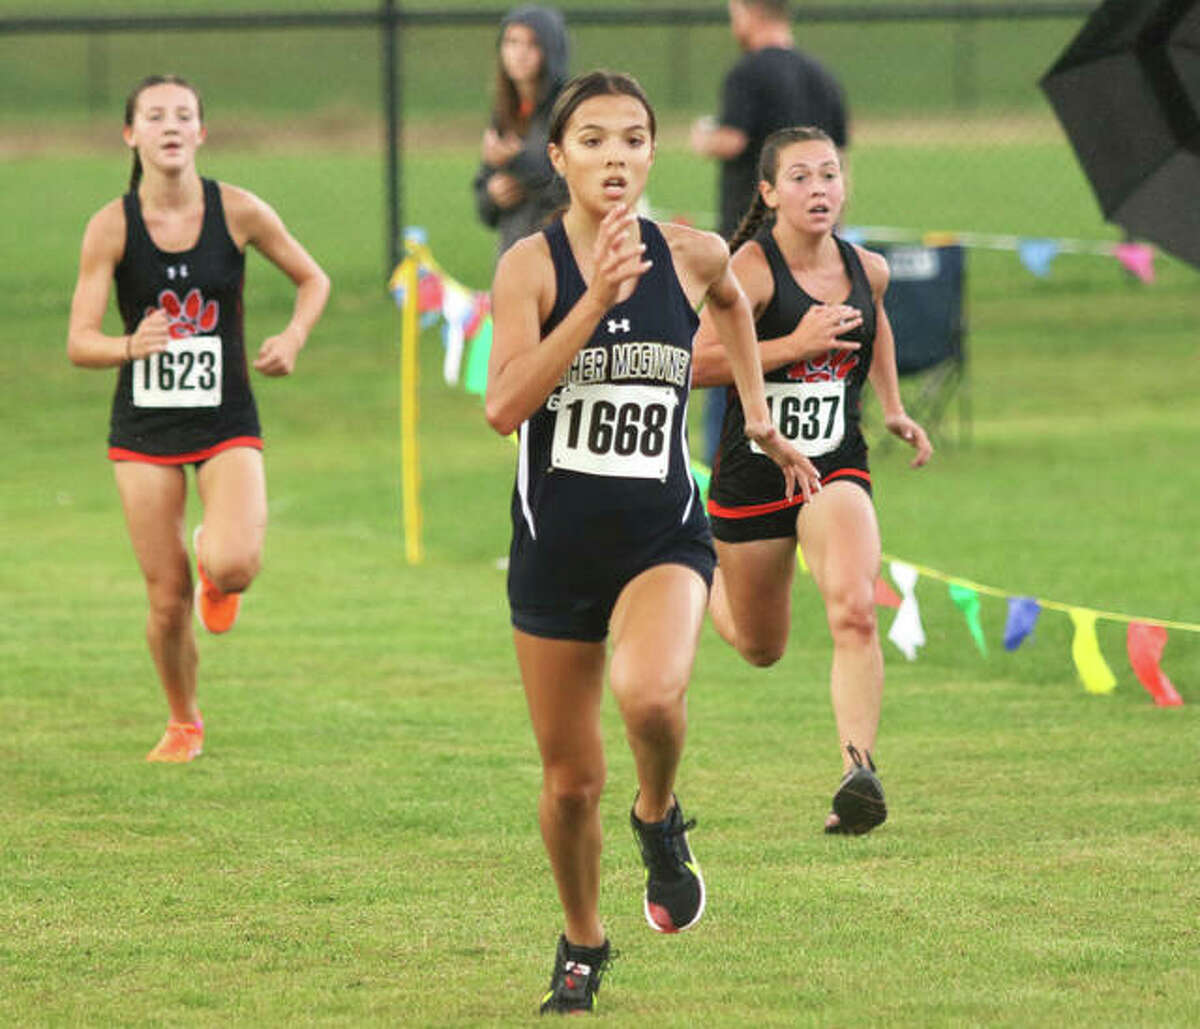 Father McGivney sophomore Kaitlyn Hatley (1668) outruns Edwardsville's Olivia Coll (right) and Emily Nuttall in the final meters before the finish in the Madison County Meet on Oct. 5 at the Bethalto Sports Complex.